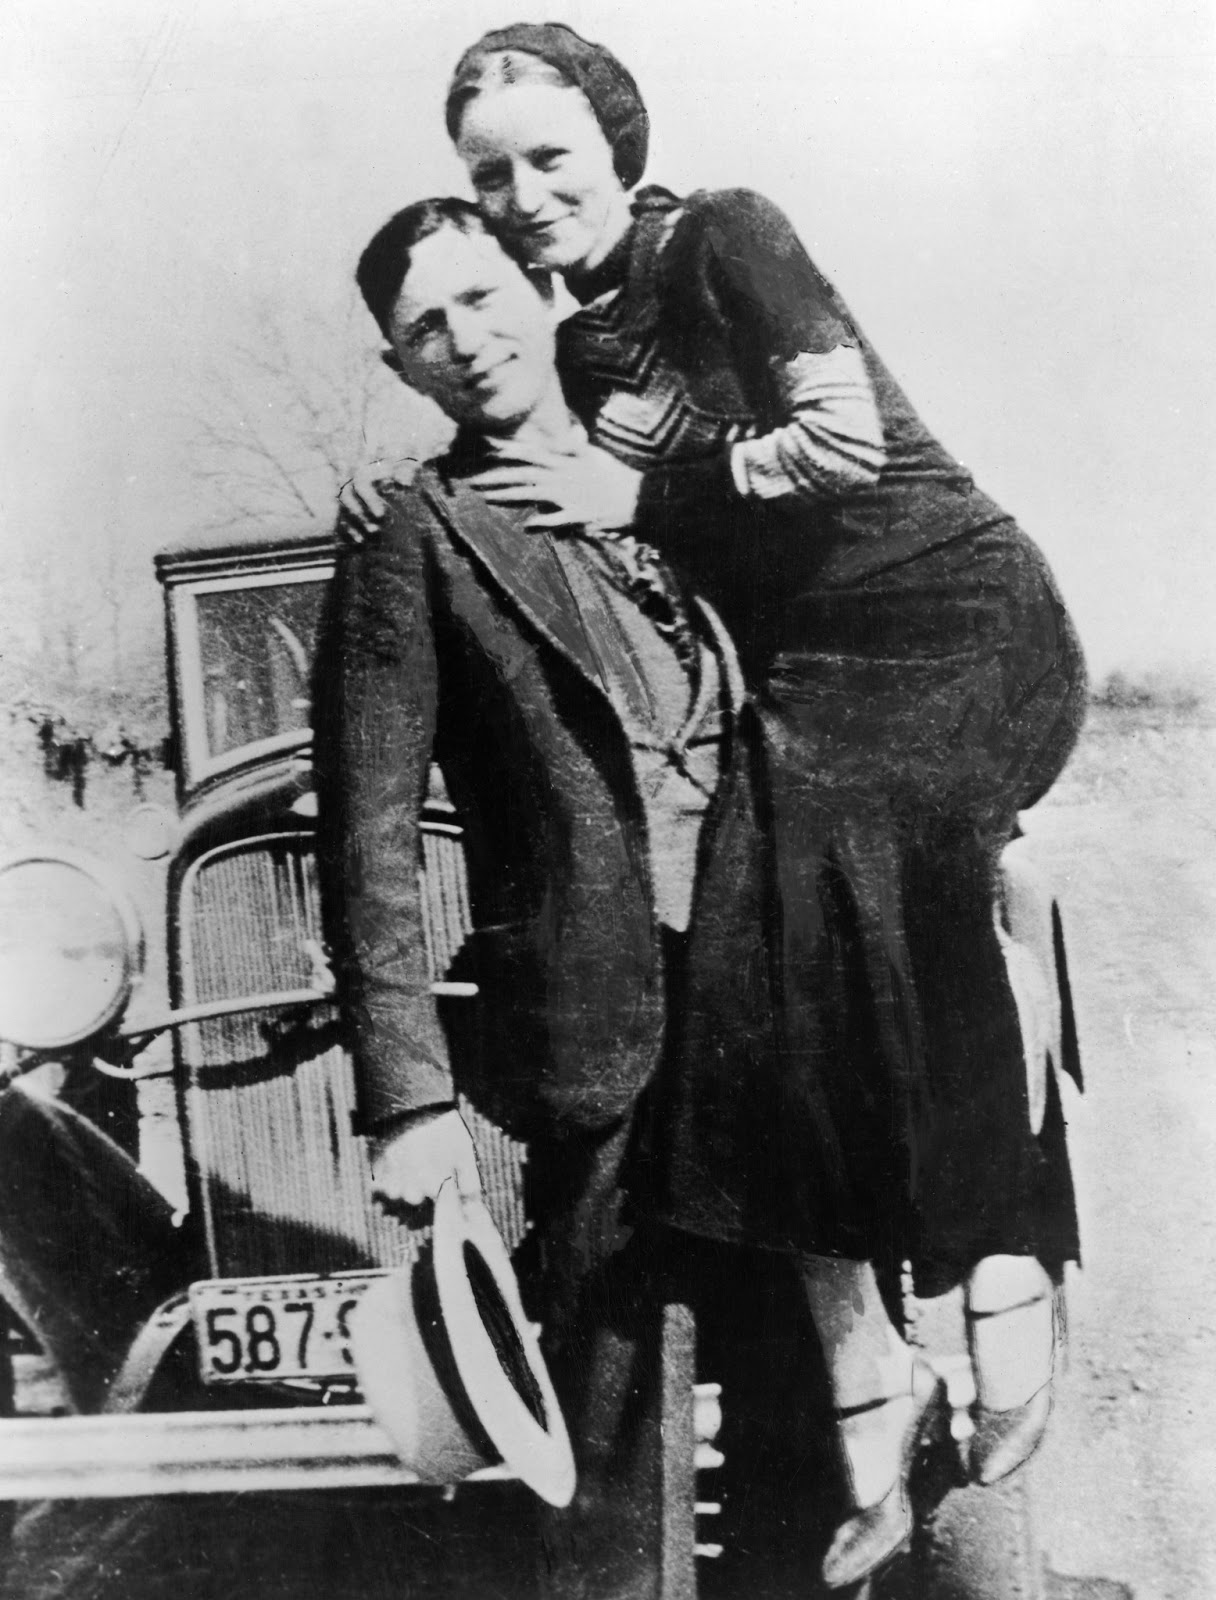 an analysis of the characters bonnie and clyde History and the media has filled our heads with all kinds of stories about bonnie parker and clyde barrow, and only some of those rumors are true.